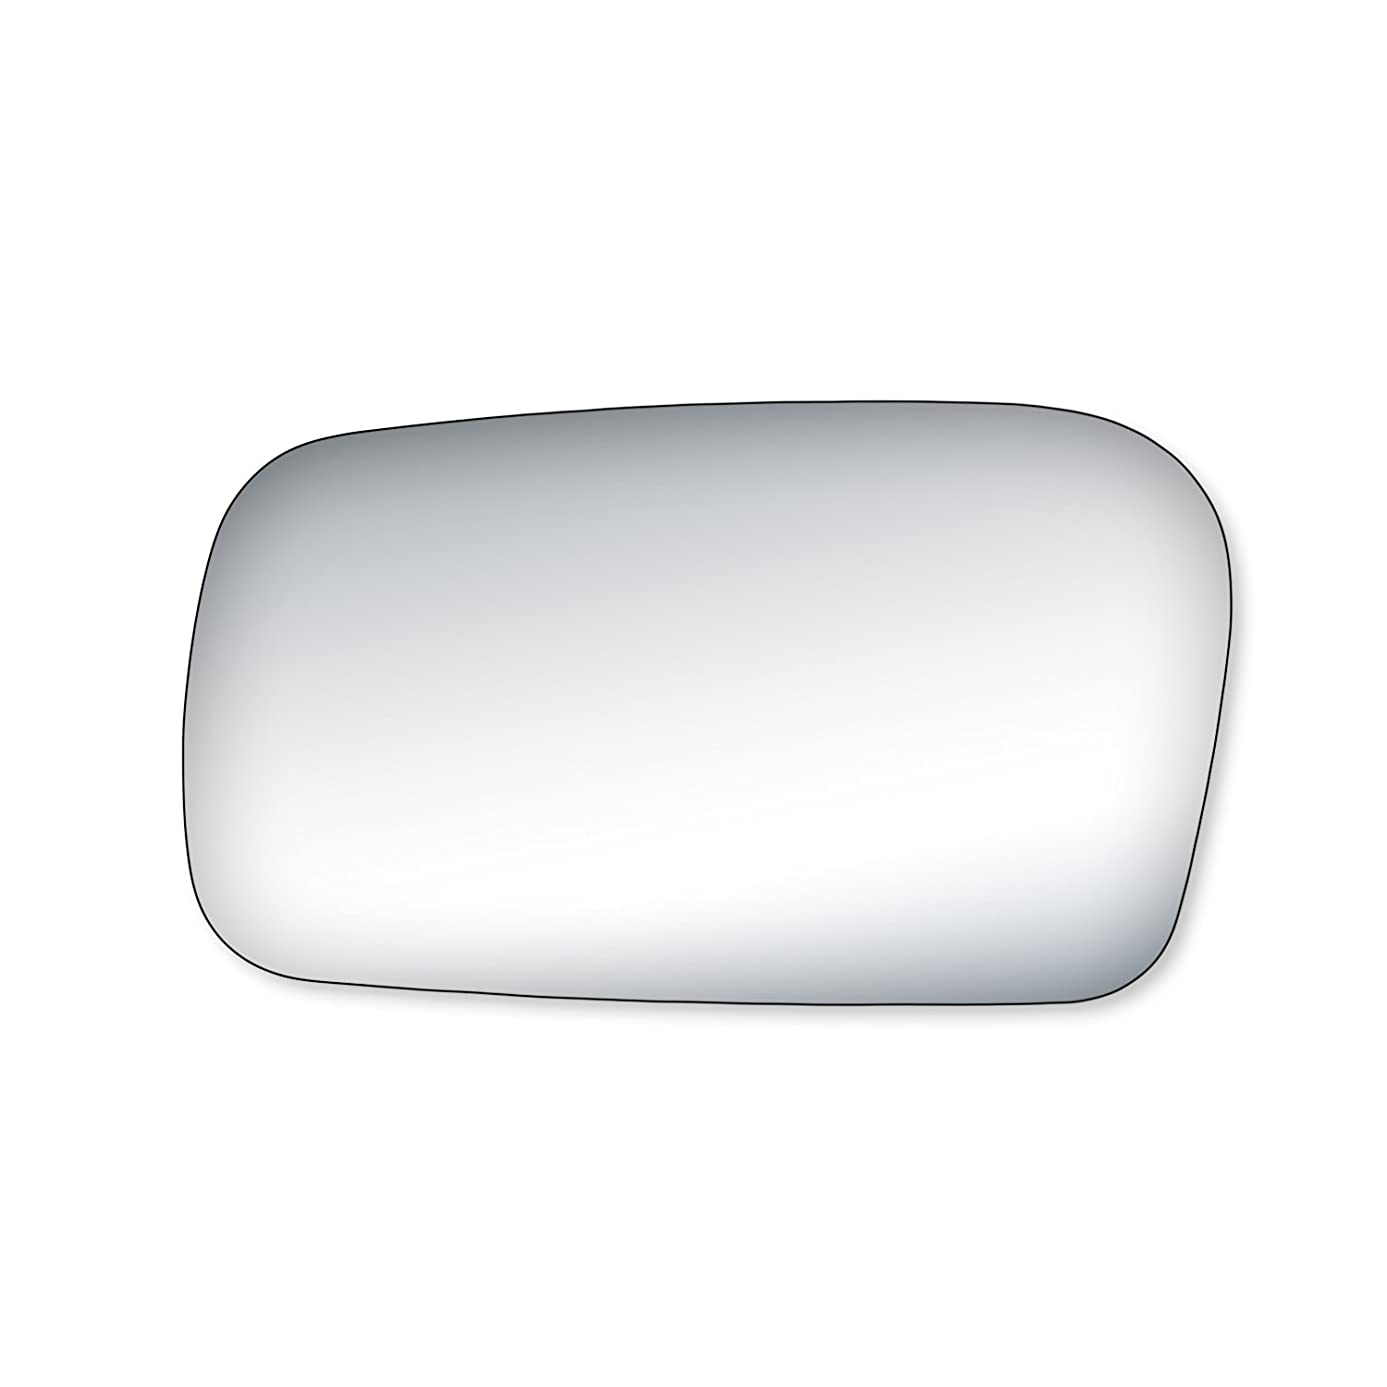 Fit System 99106 Nissan Sentra Driver/Passenger Side Replacement Mirror Glass